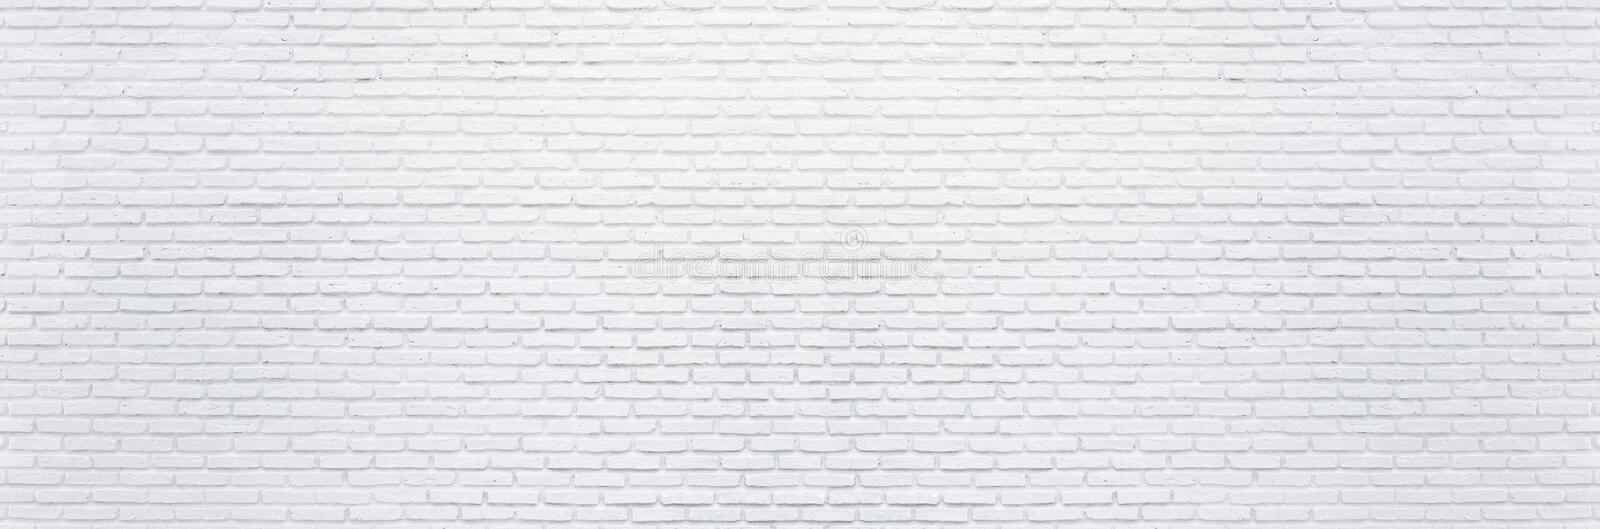 Abstract white brick wall texture background. Horizontal panoramic view of masonry brick wall. For interior design stock photo